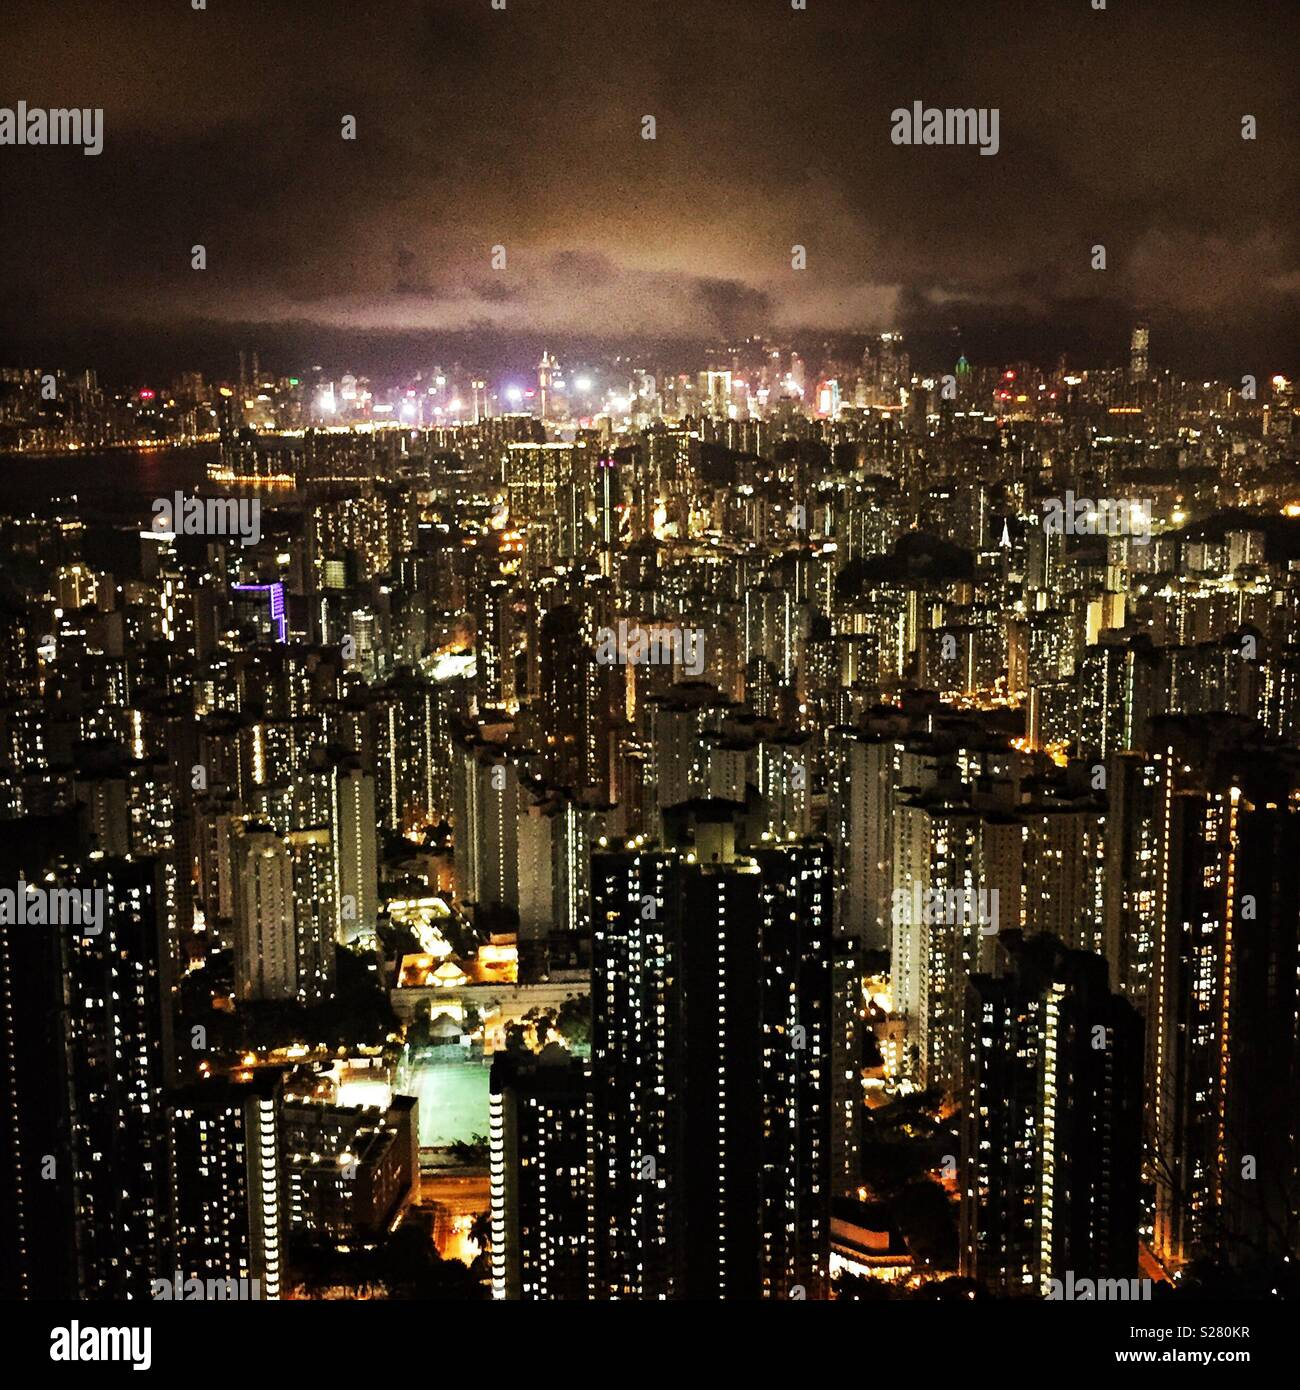 The bright lights of Hong Kong Island and Tsim Sha Tsui viewed across the high density urban landscape of the Kowloon Peninsula from the old Sha Tin Pass Road, Hong Kong (warm tone) - Stock Image